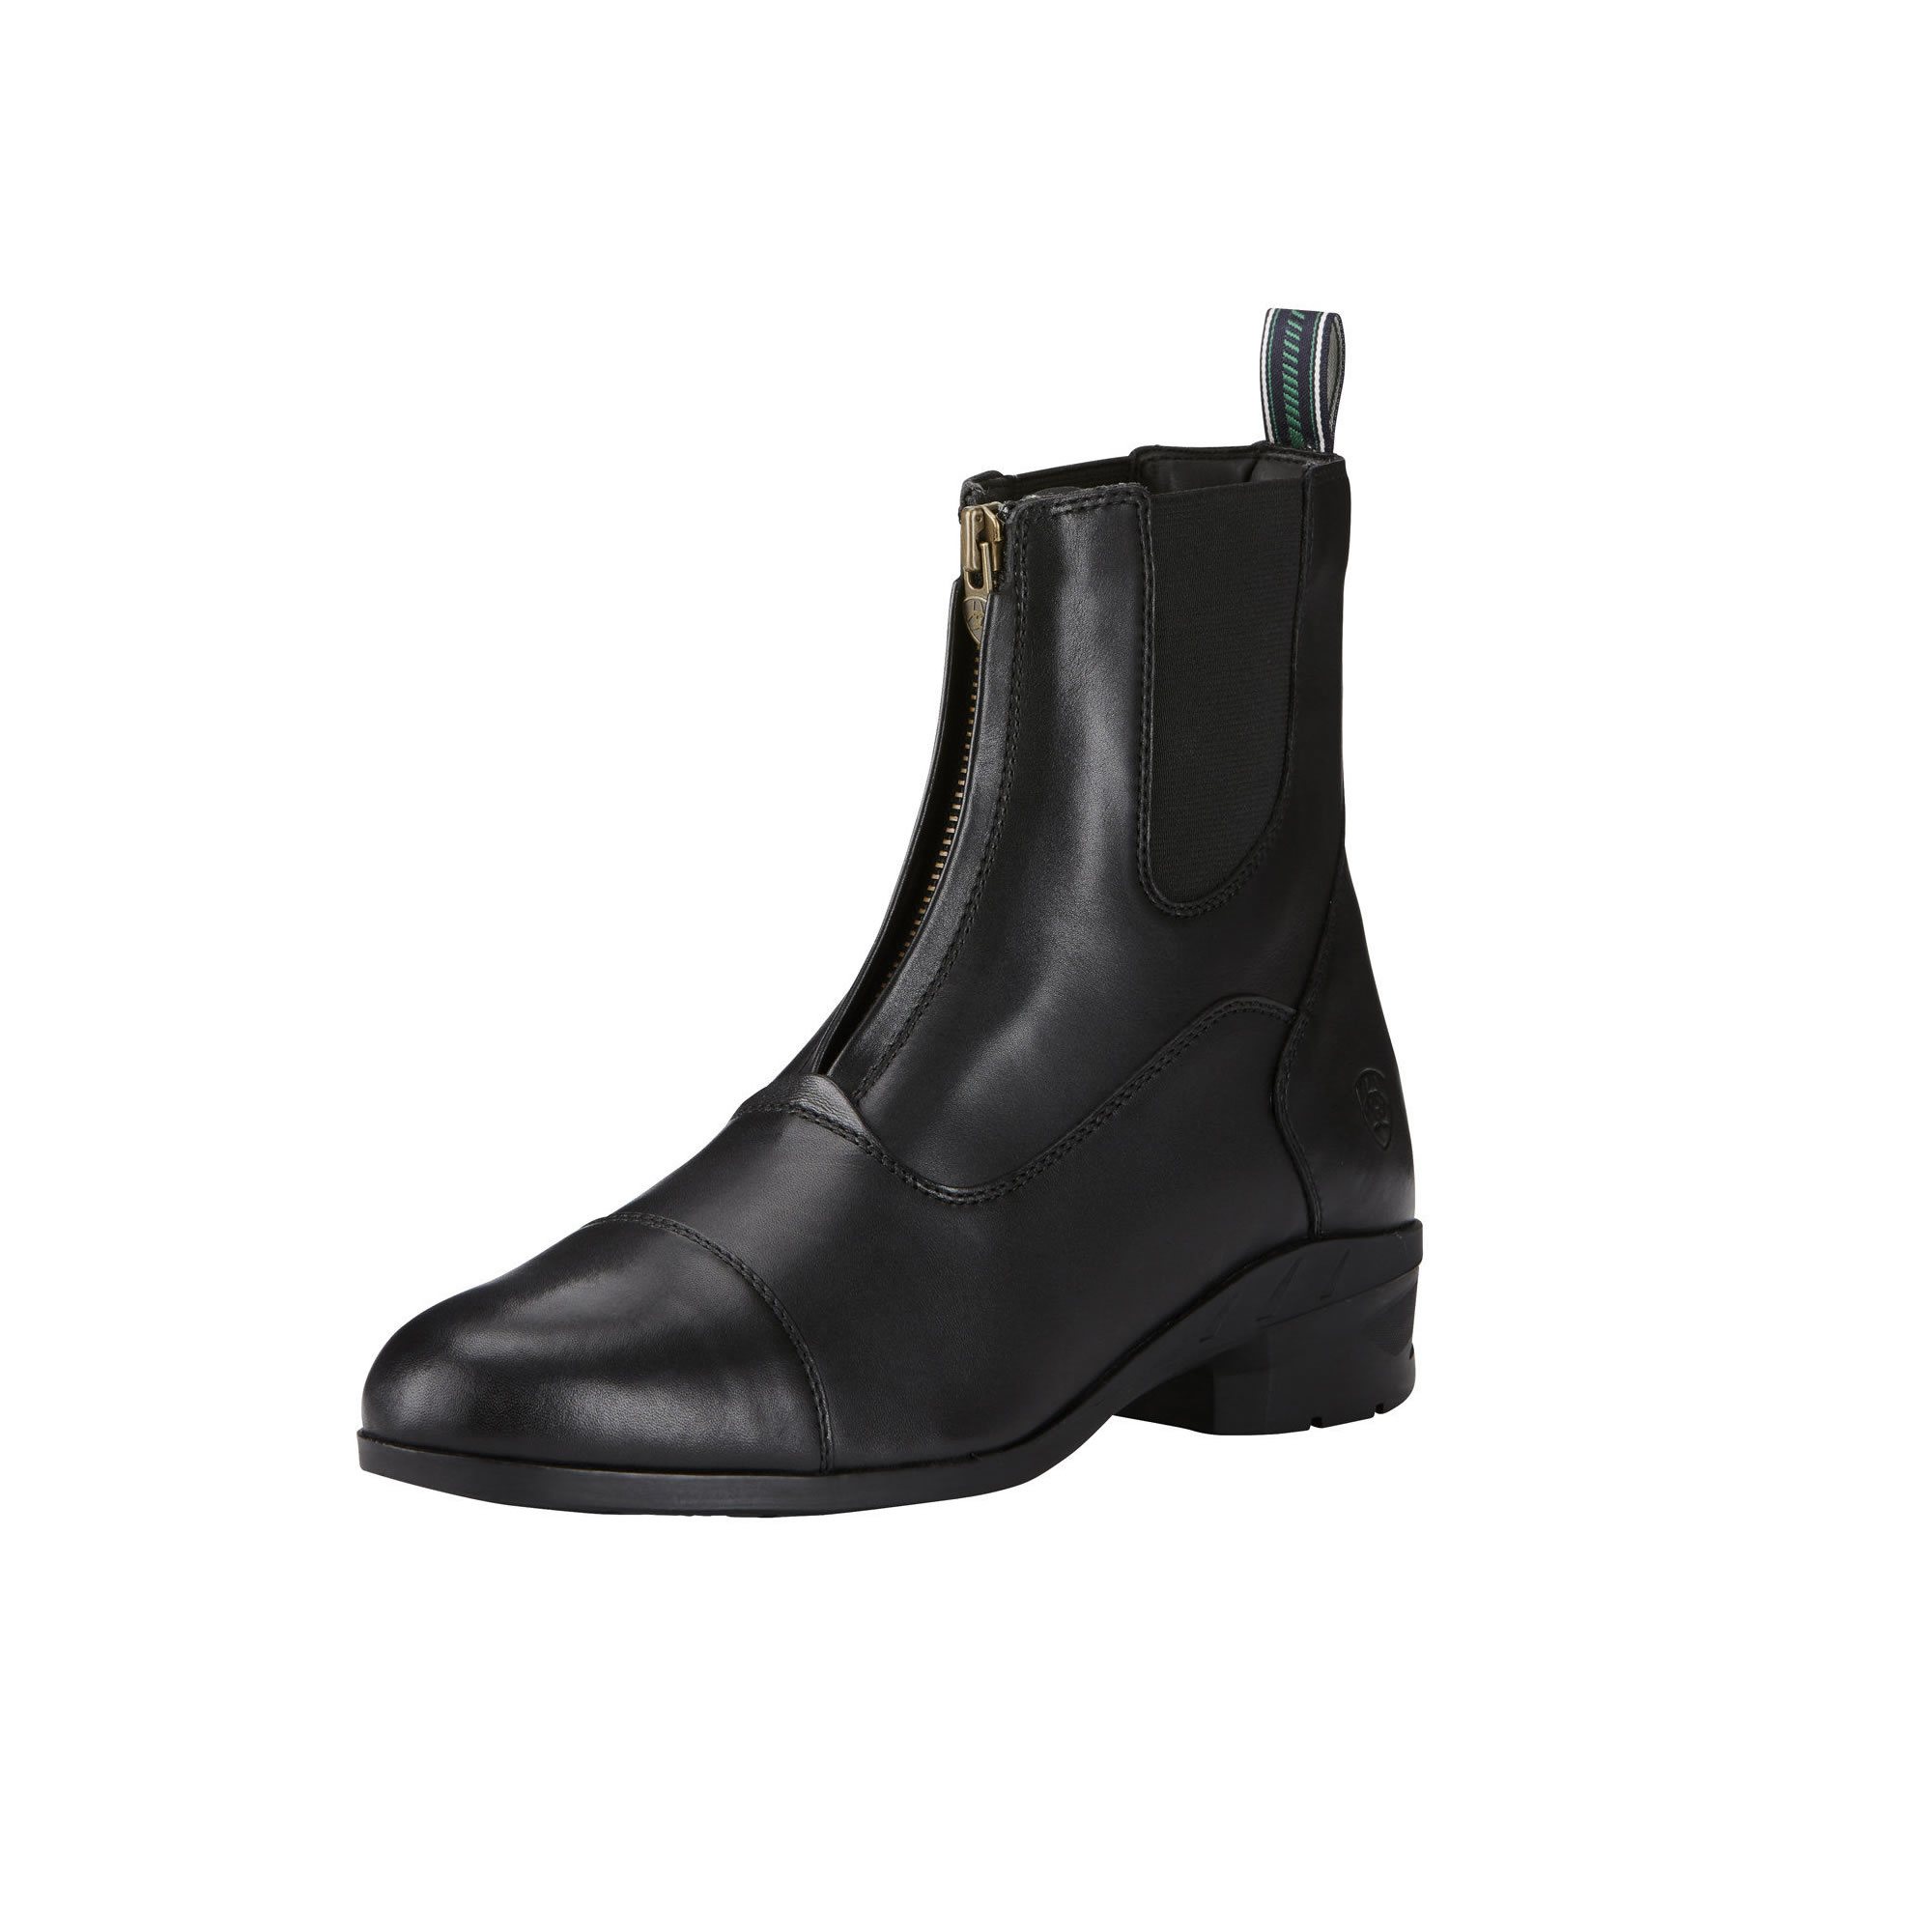 40b3d10a93ee7 Riders Boots & Shoes. Highland Industrial Supplies Ltd UK